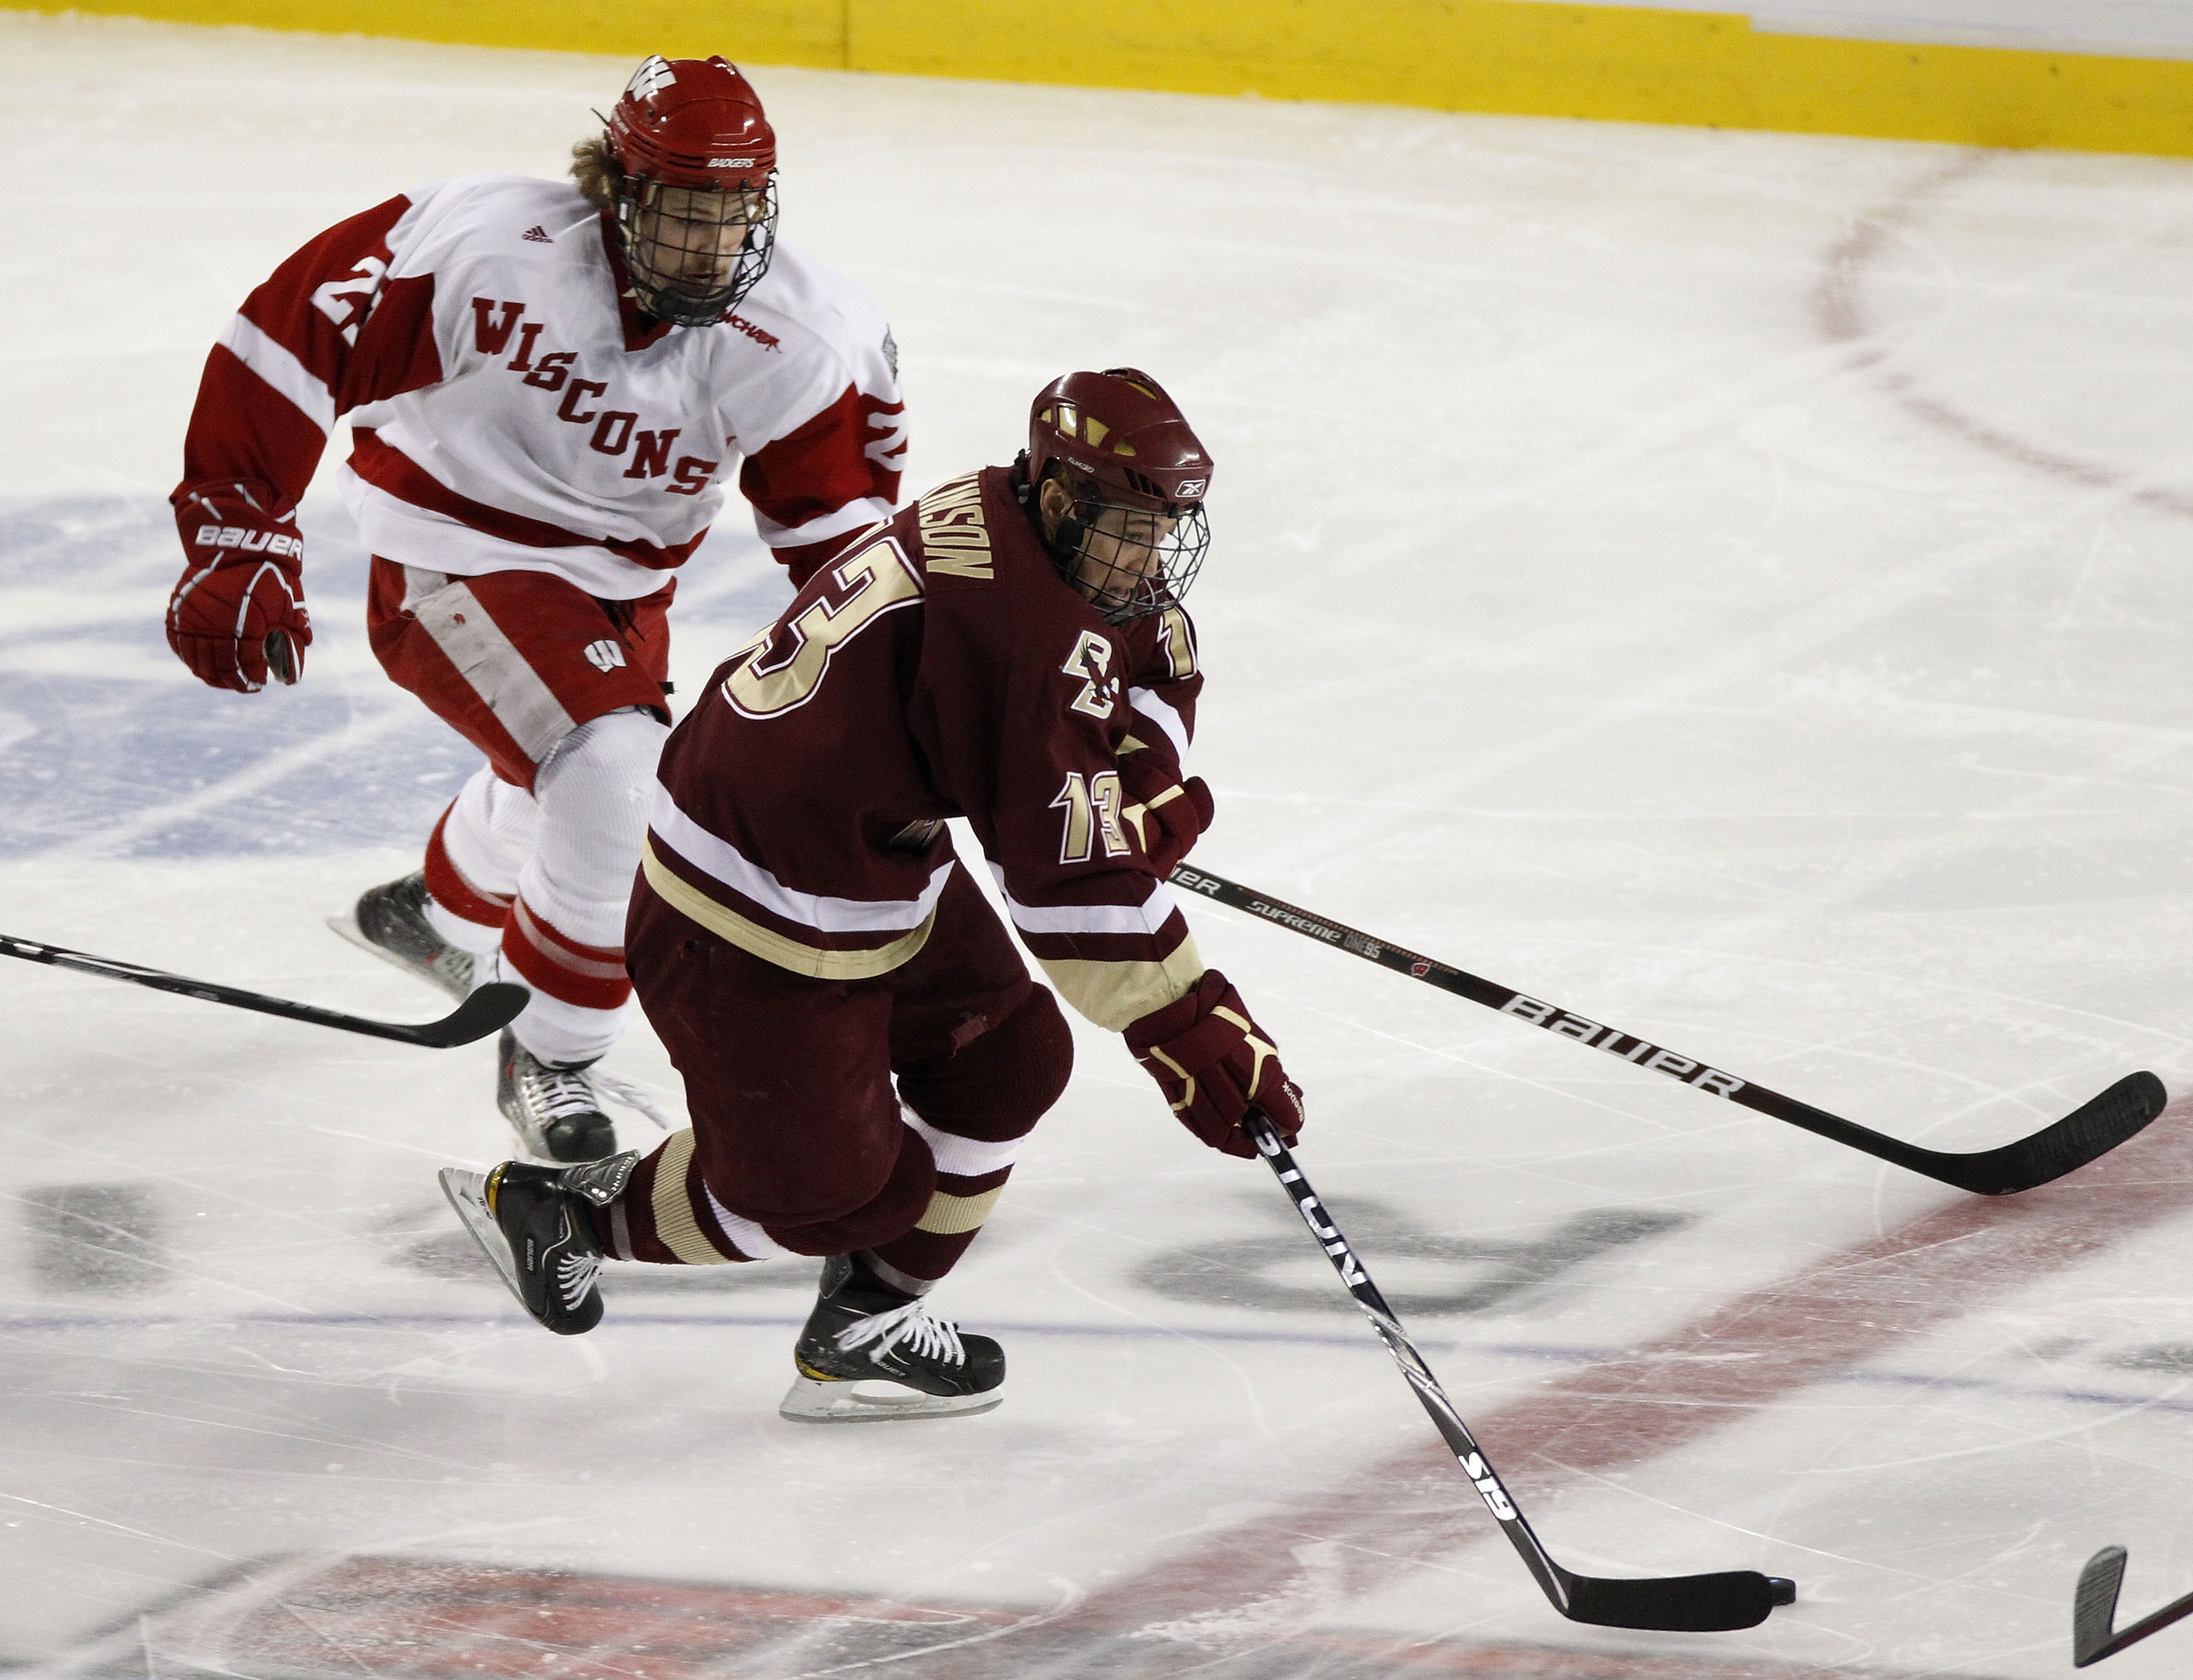 Much like the 2010 national title game, this weekend didn't go well for the Badgers against Boston College.